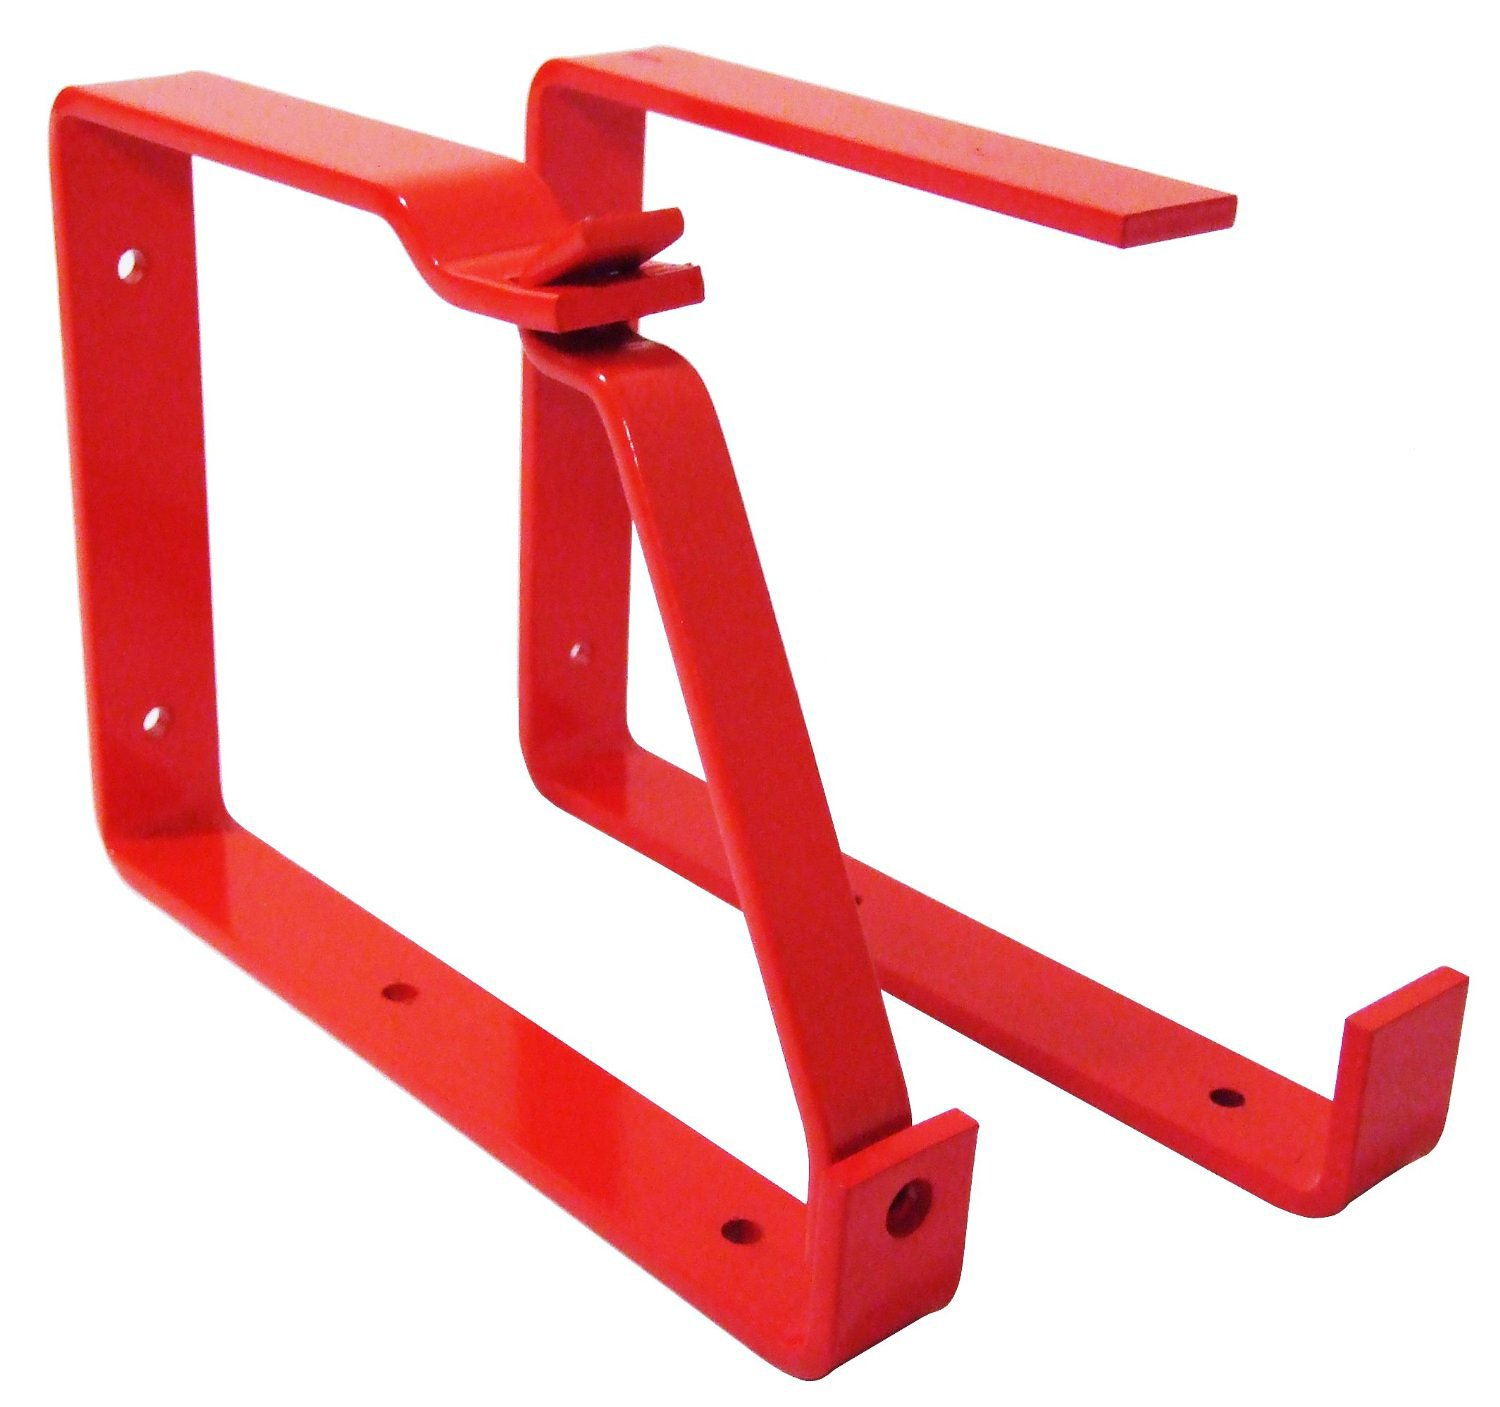 TB Davies Wall Brackets   Ladder Accessory | Securely Stores Your Ladders |  Fits Most Double U0026 Triple Section Extension Ladders: Amazon.co.uk: DIY U0026  Tools